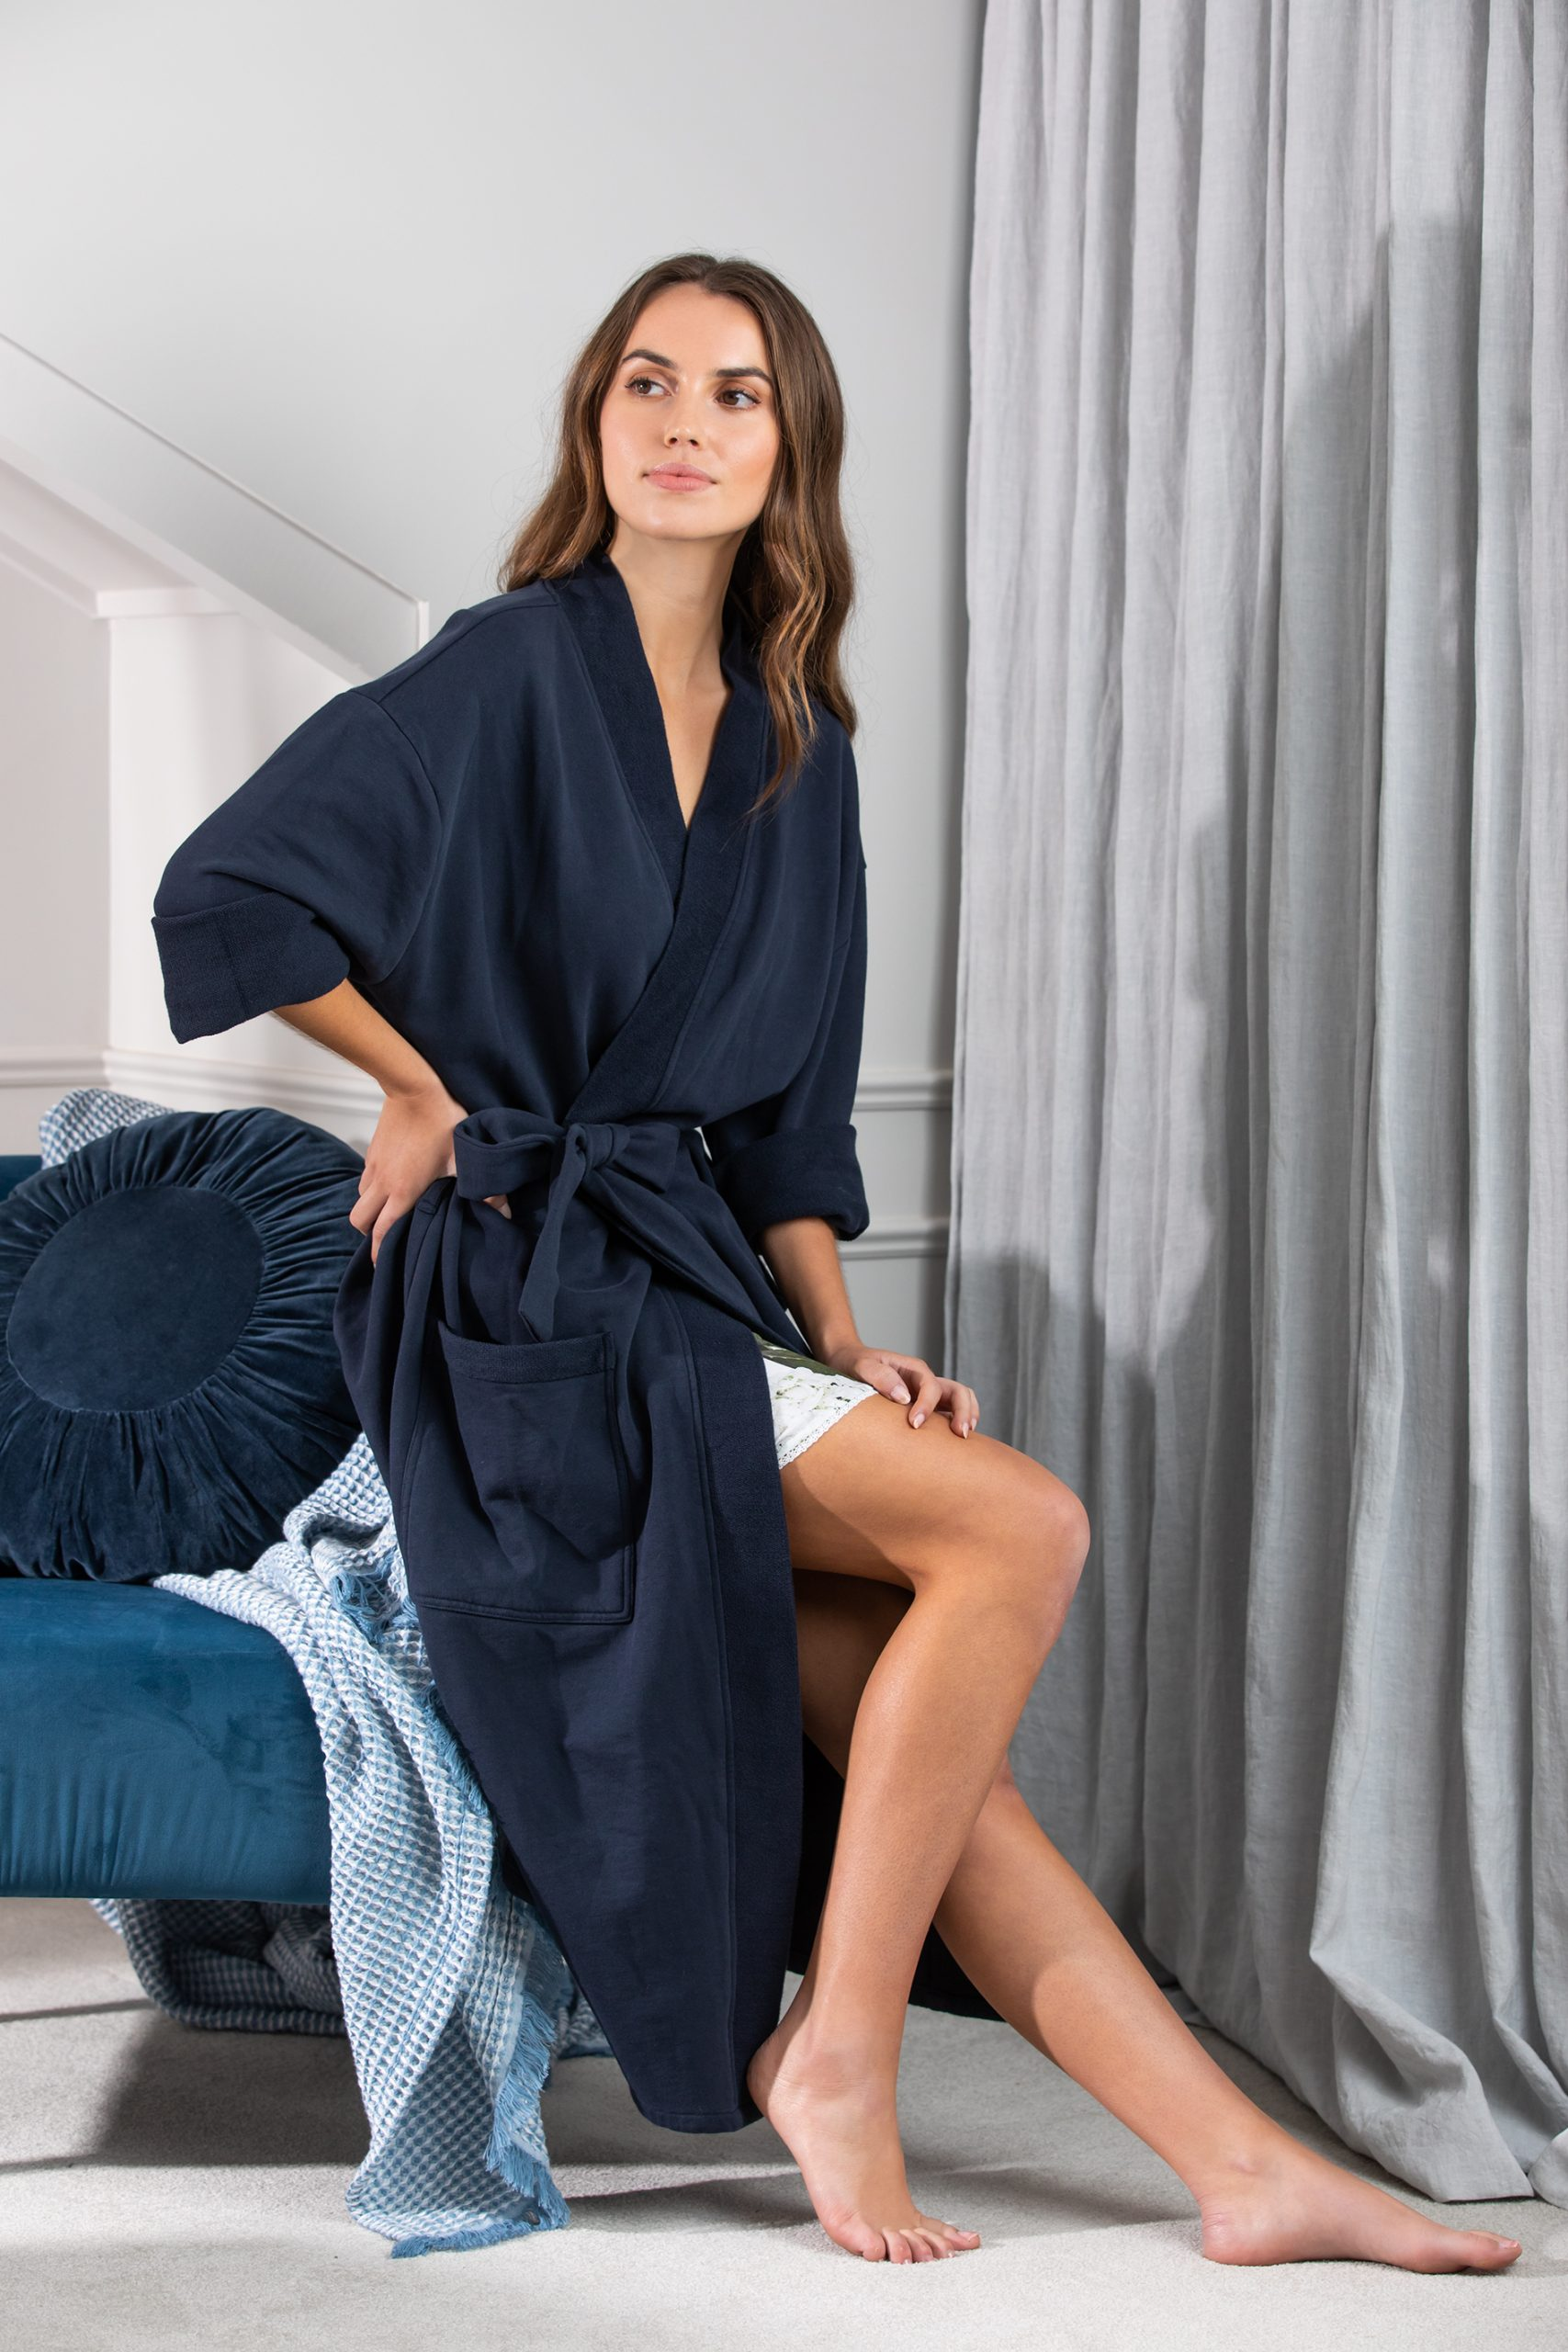 Wallace Cotton Nadine Robe Sum120 2 $99.90